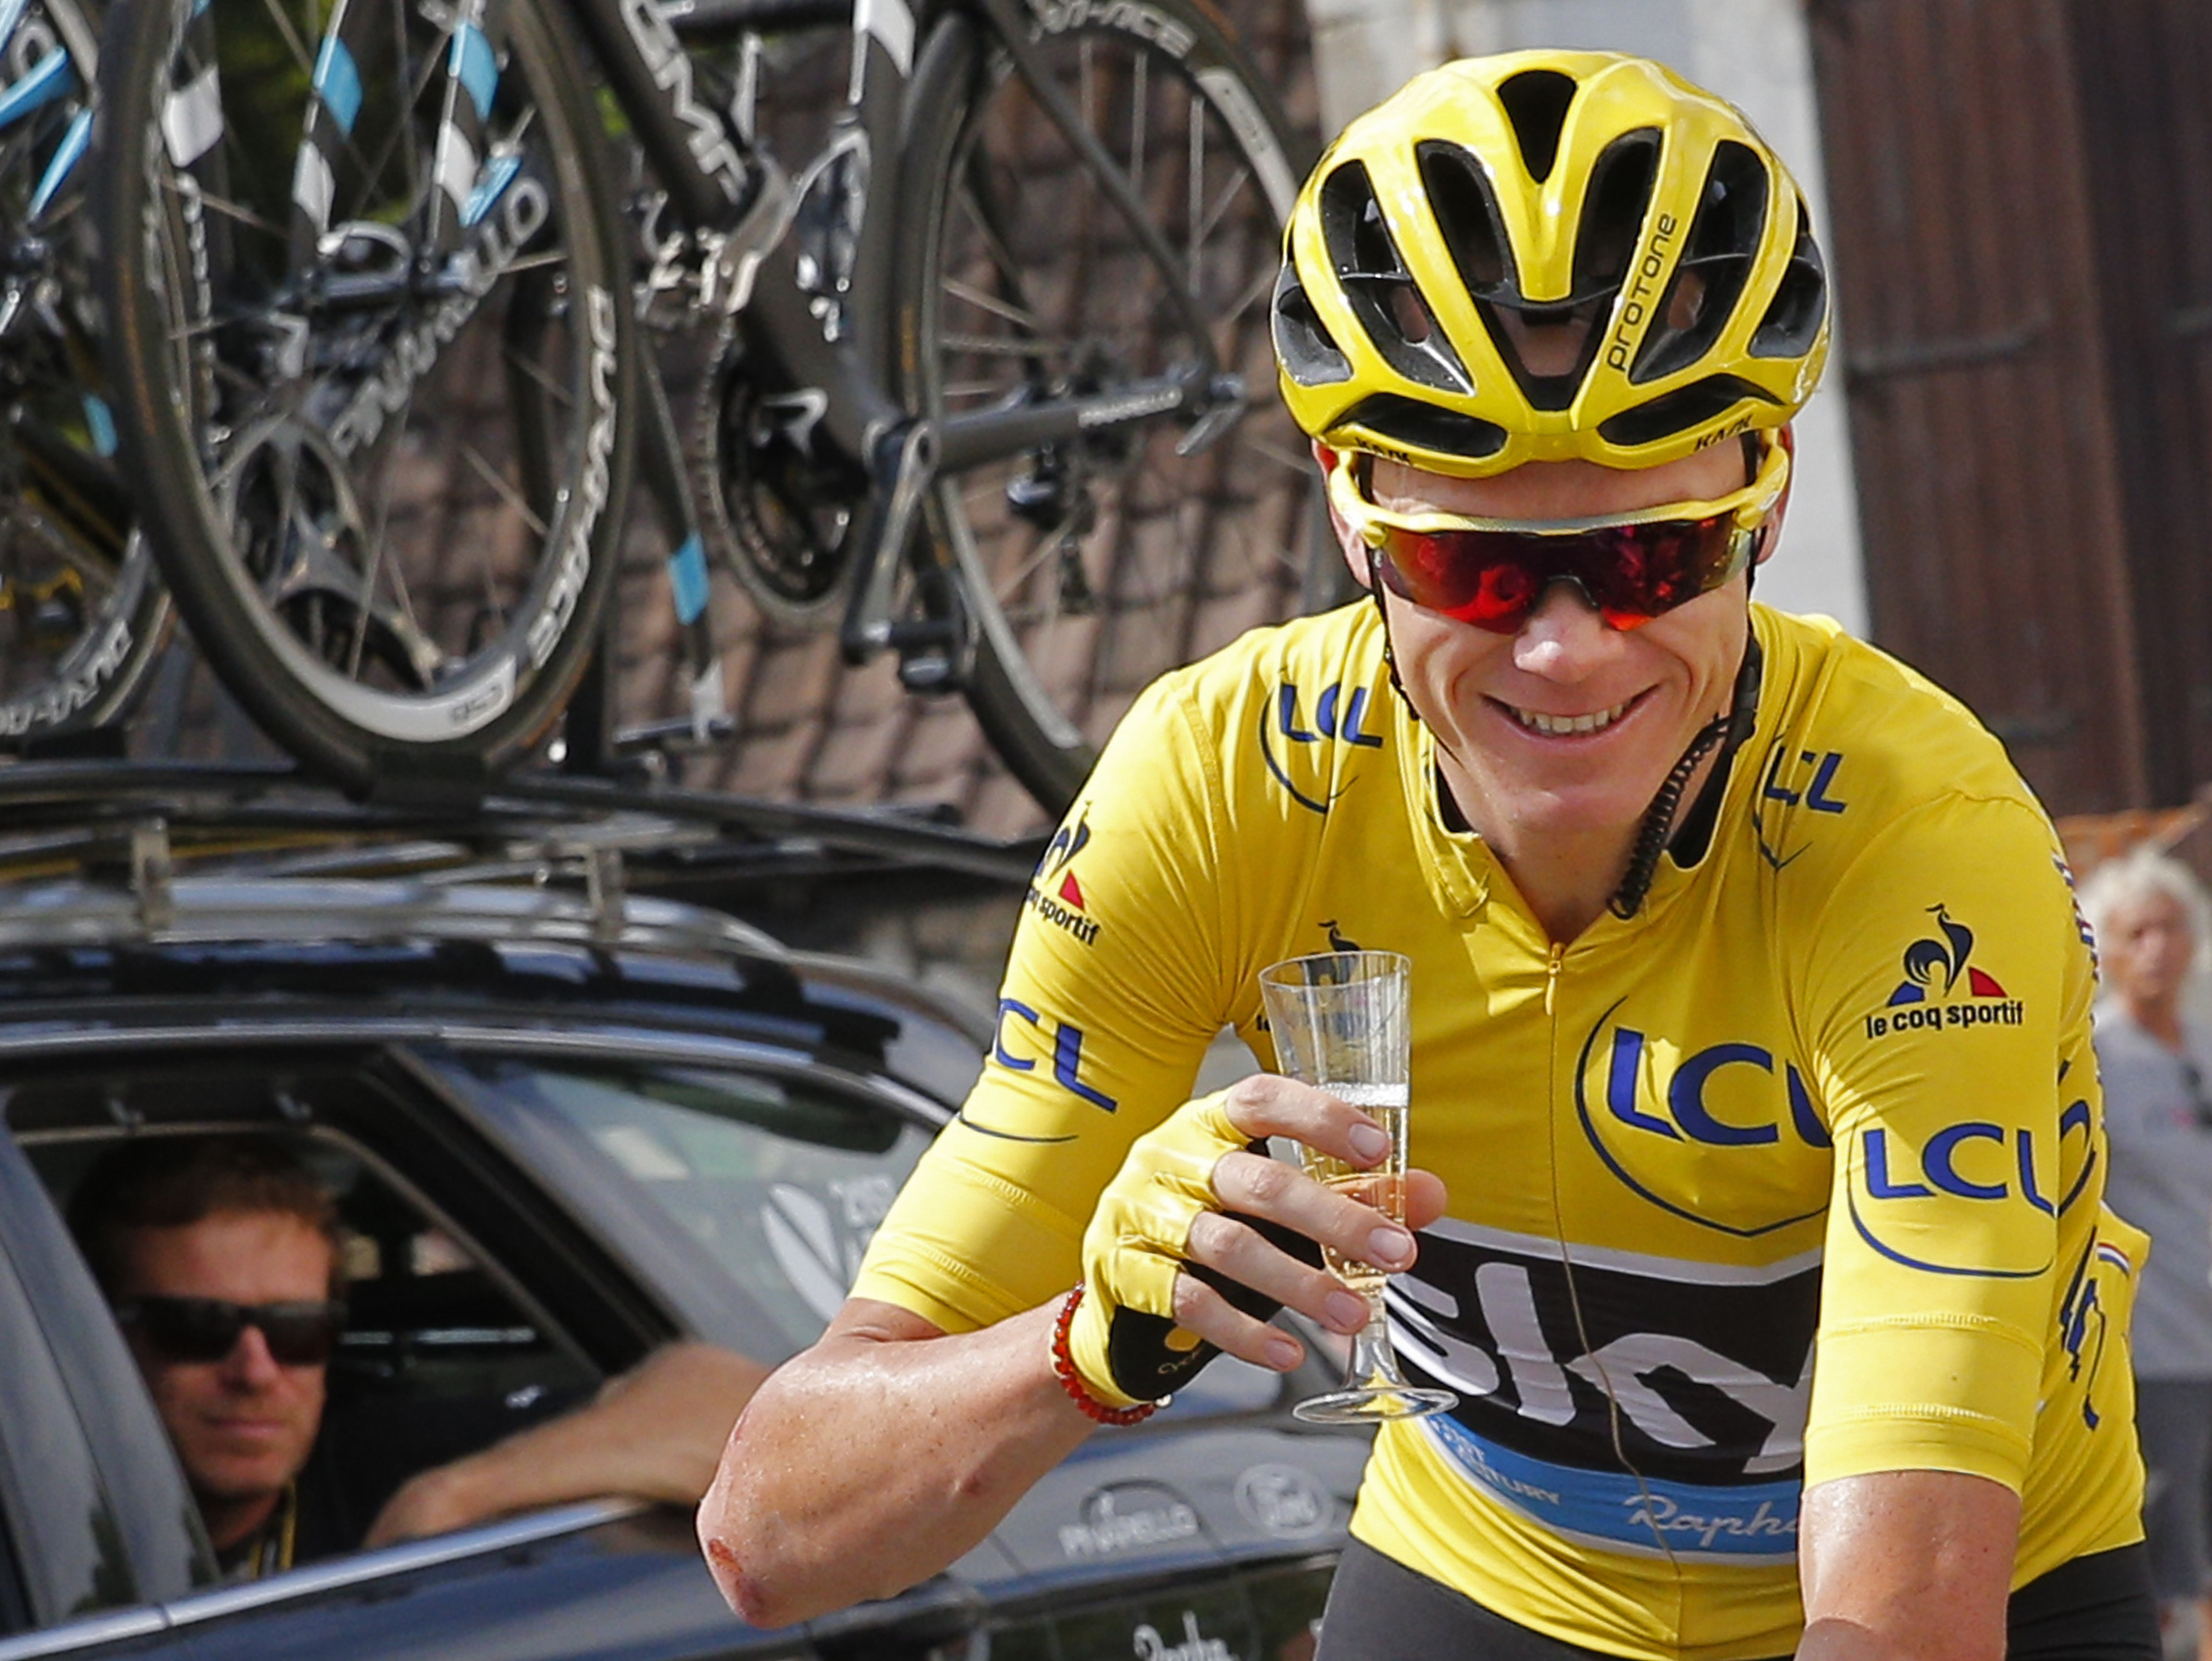 FILE - This is a Sunday, July 24, 2016  file photo of Britain's Chris Froome, wearing the overall leader's yellow jersey, celebrates with a glass of champagne during the twenty-first stage of the Tour de France  in Paris. Three-time Tour de France winner